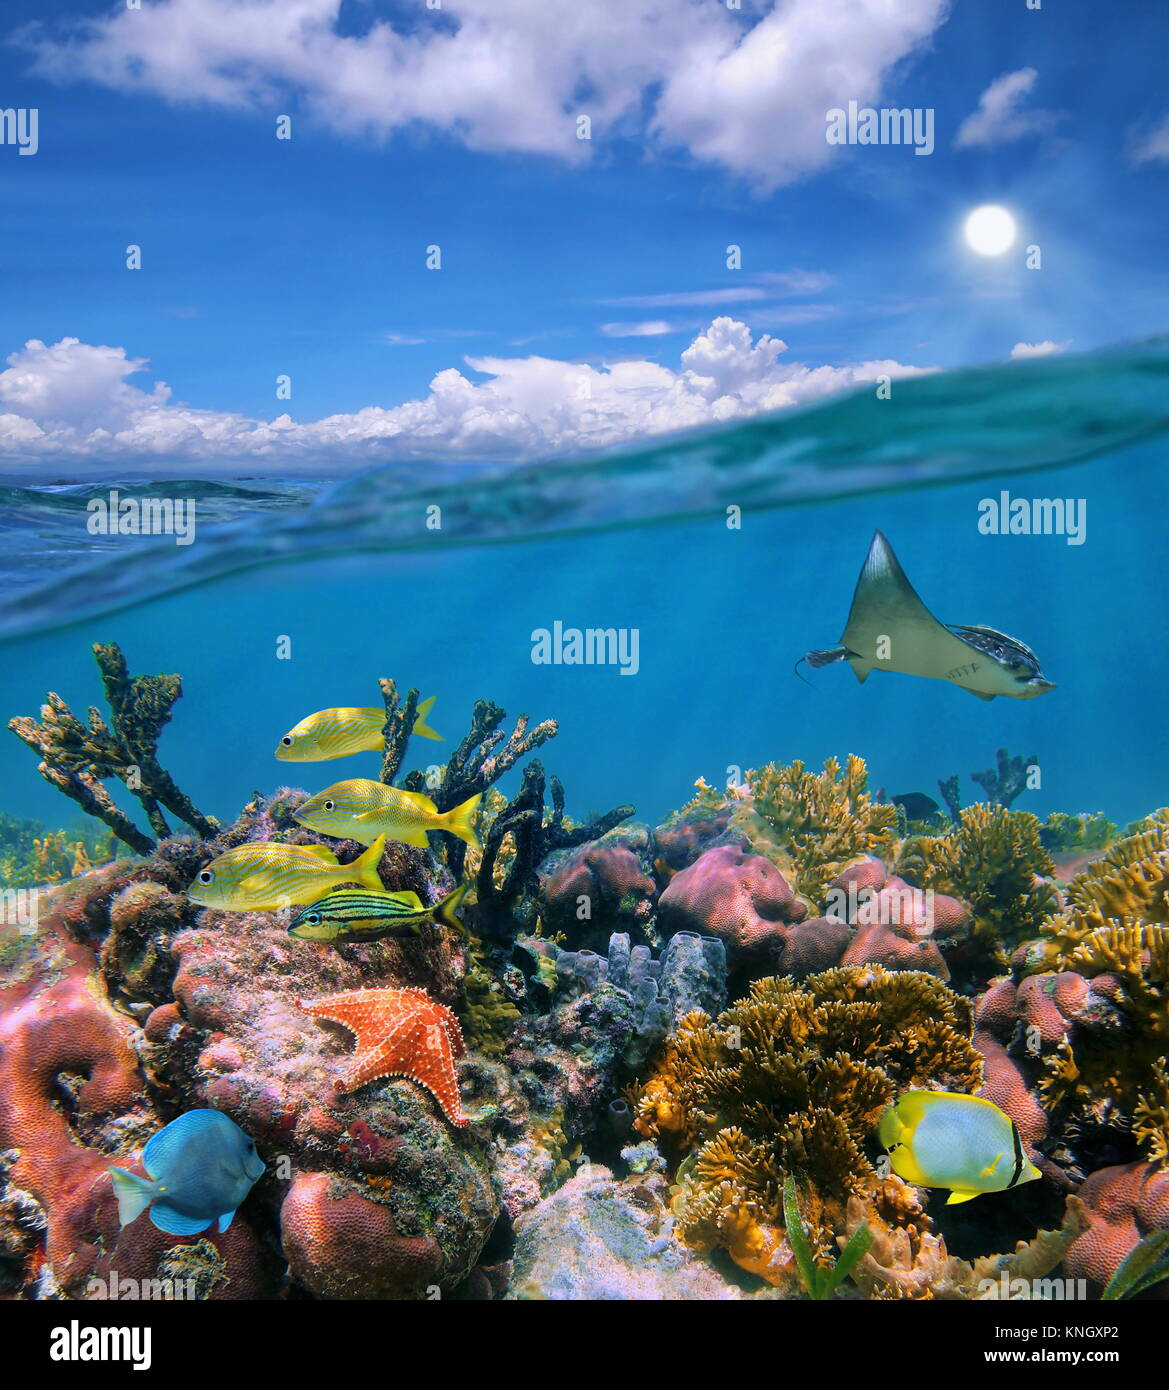 Seascape over and under sea surface, cloudy blue sky and colorful coral reef with tropical marine life underwater, - Stock Image